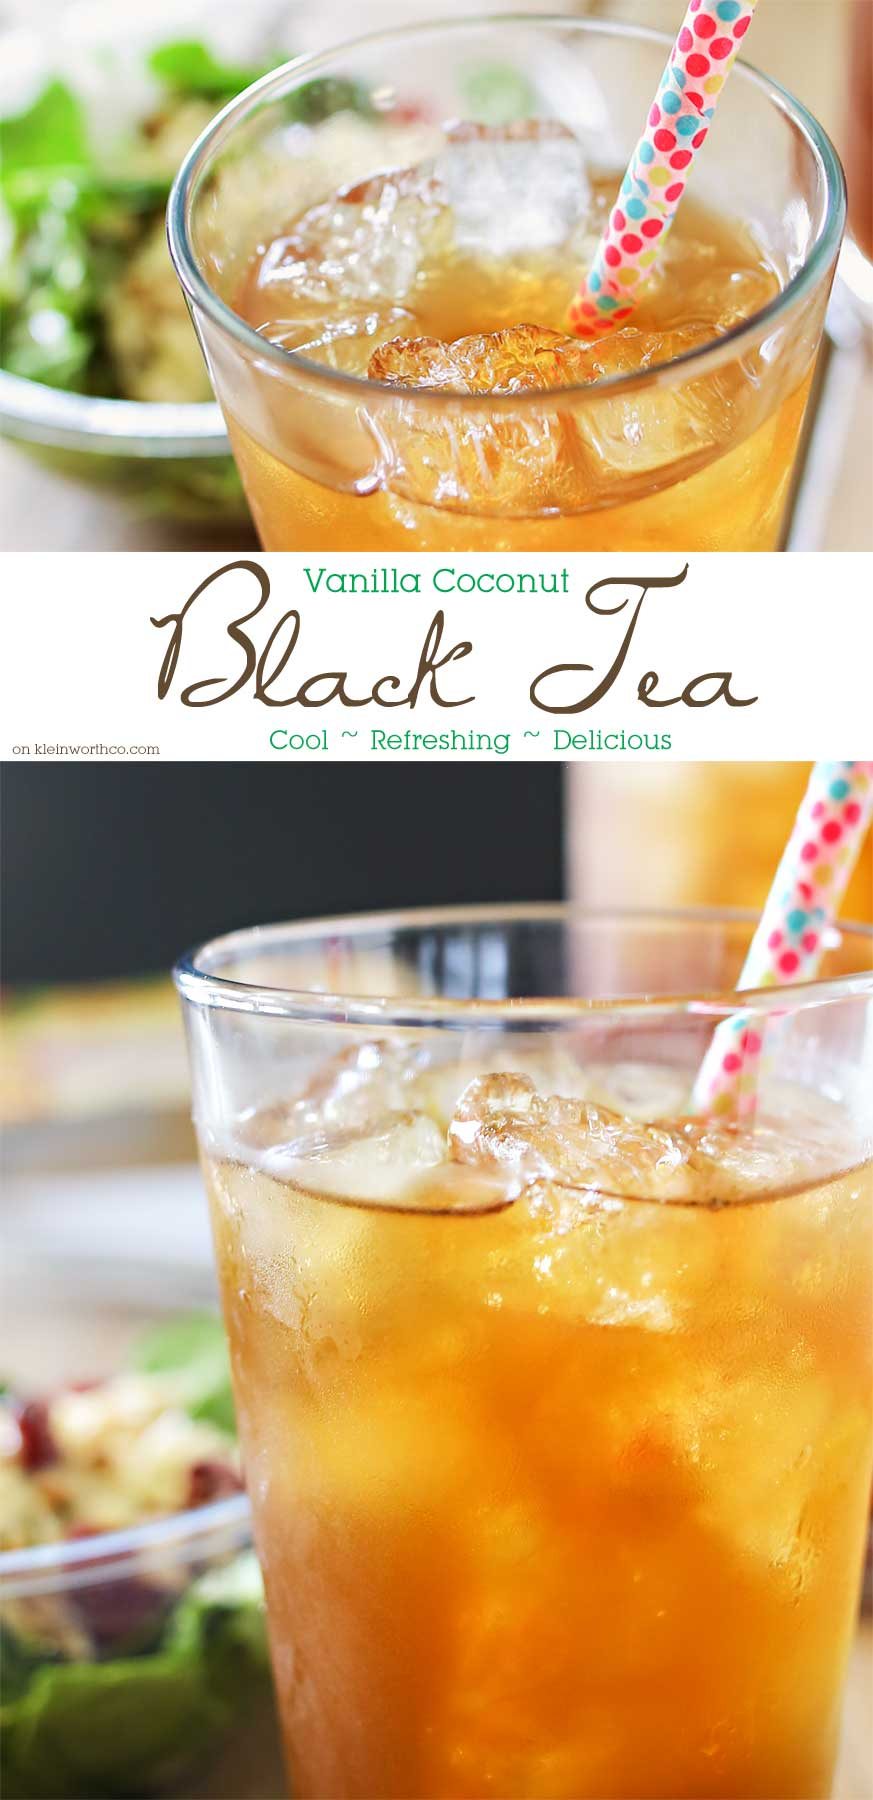 Vanilla Coconut Black Tea is the perfect refreshing beverage to pair with your lunch or dinner. One of my favorite ice tea recipes that's so easy to make. Oh how I love homebrewed iced tea.